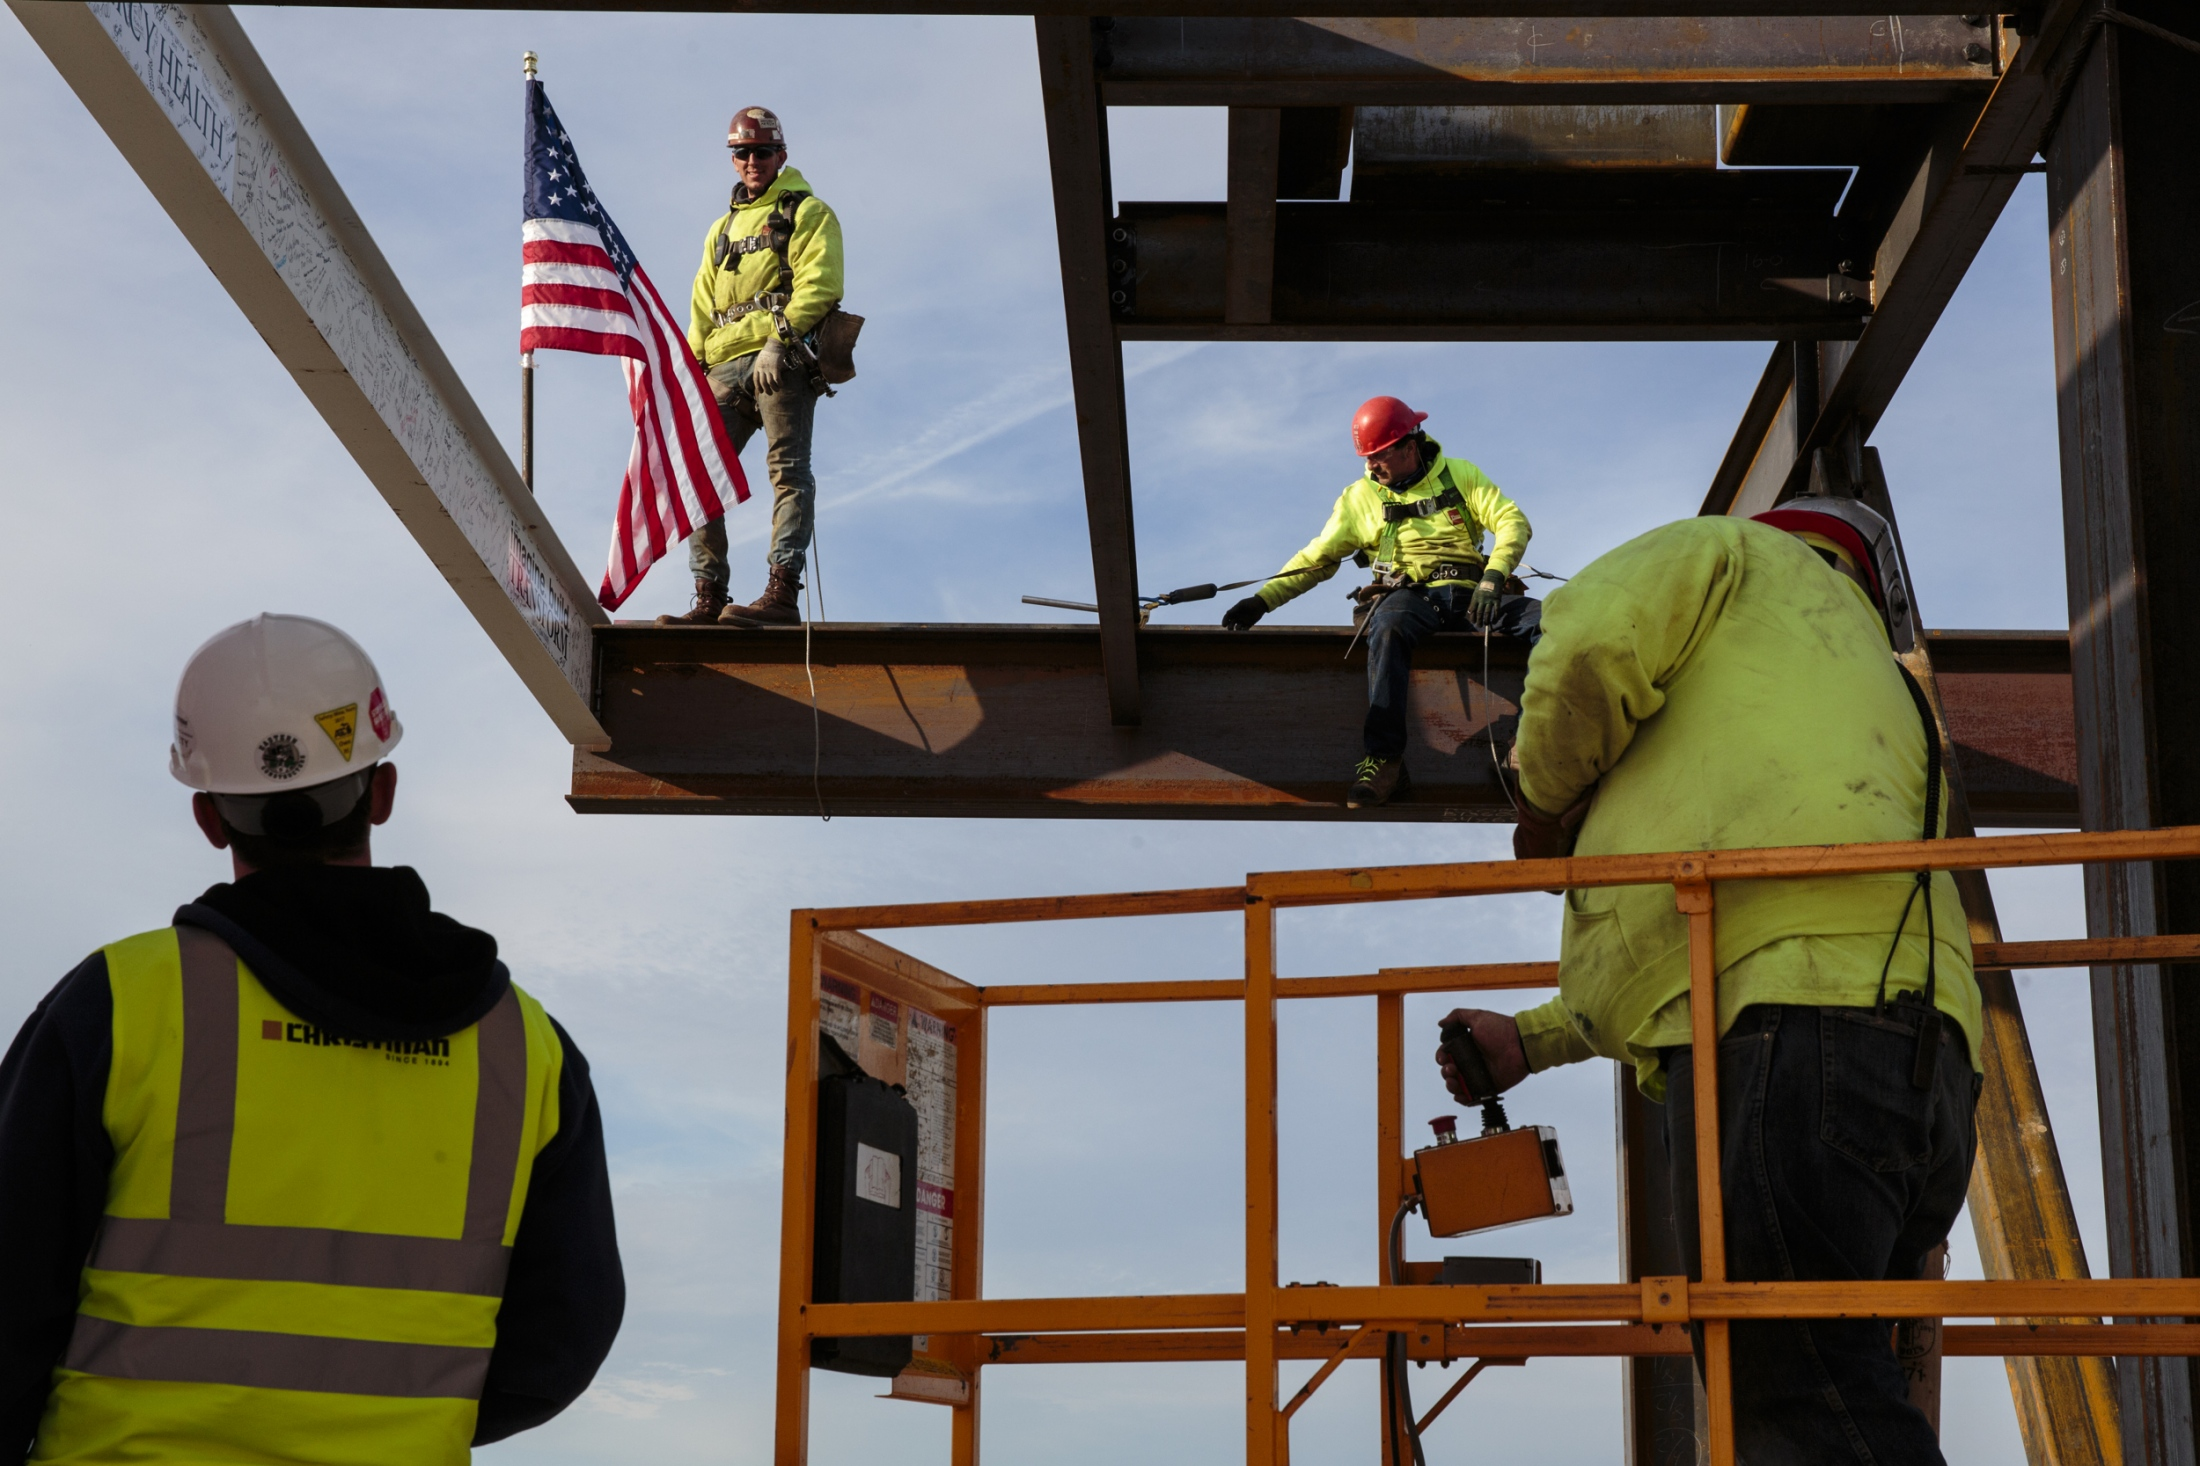 Crews put the last structural beam is put into place at the construction site at the 10-story Mercy Health medical center on Oct. 26, 2017 at the Mercy Health Mercy Campus in Muskegon, Mich. The $271 million dollar project is expected to be completed in the summer of 2019. The center will have an estimated 267 beds.